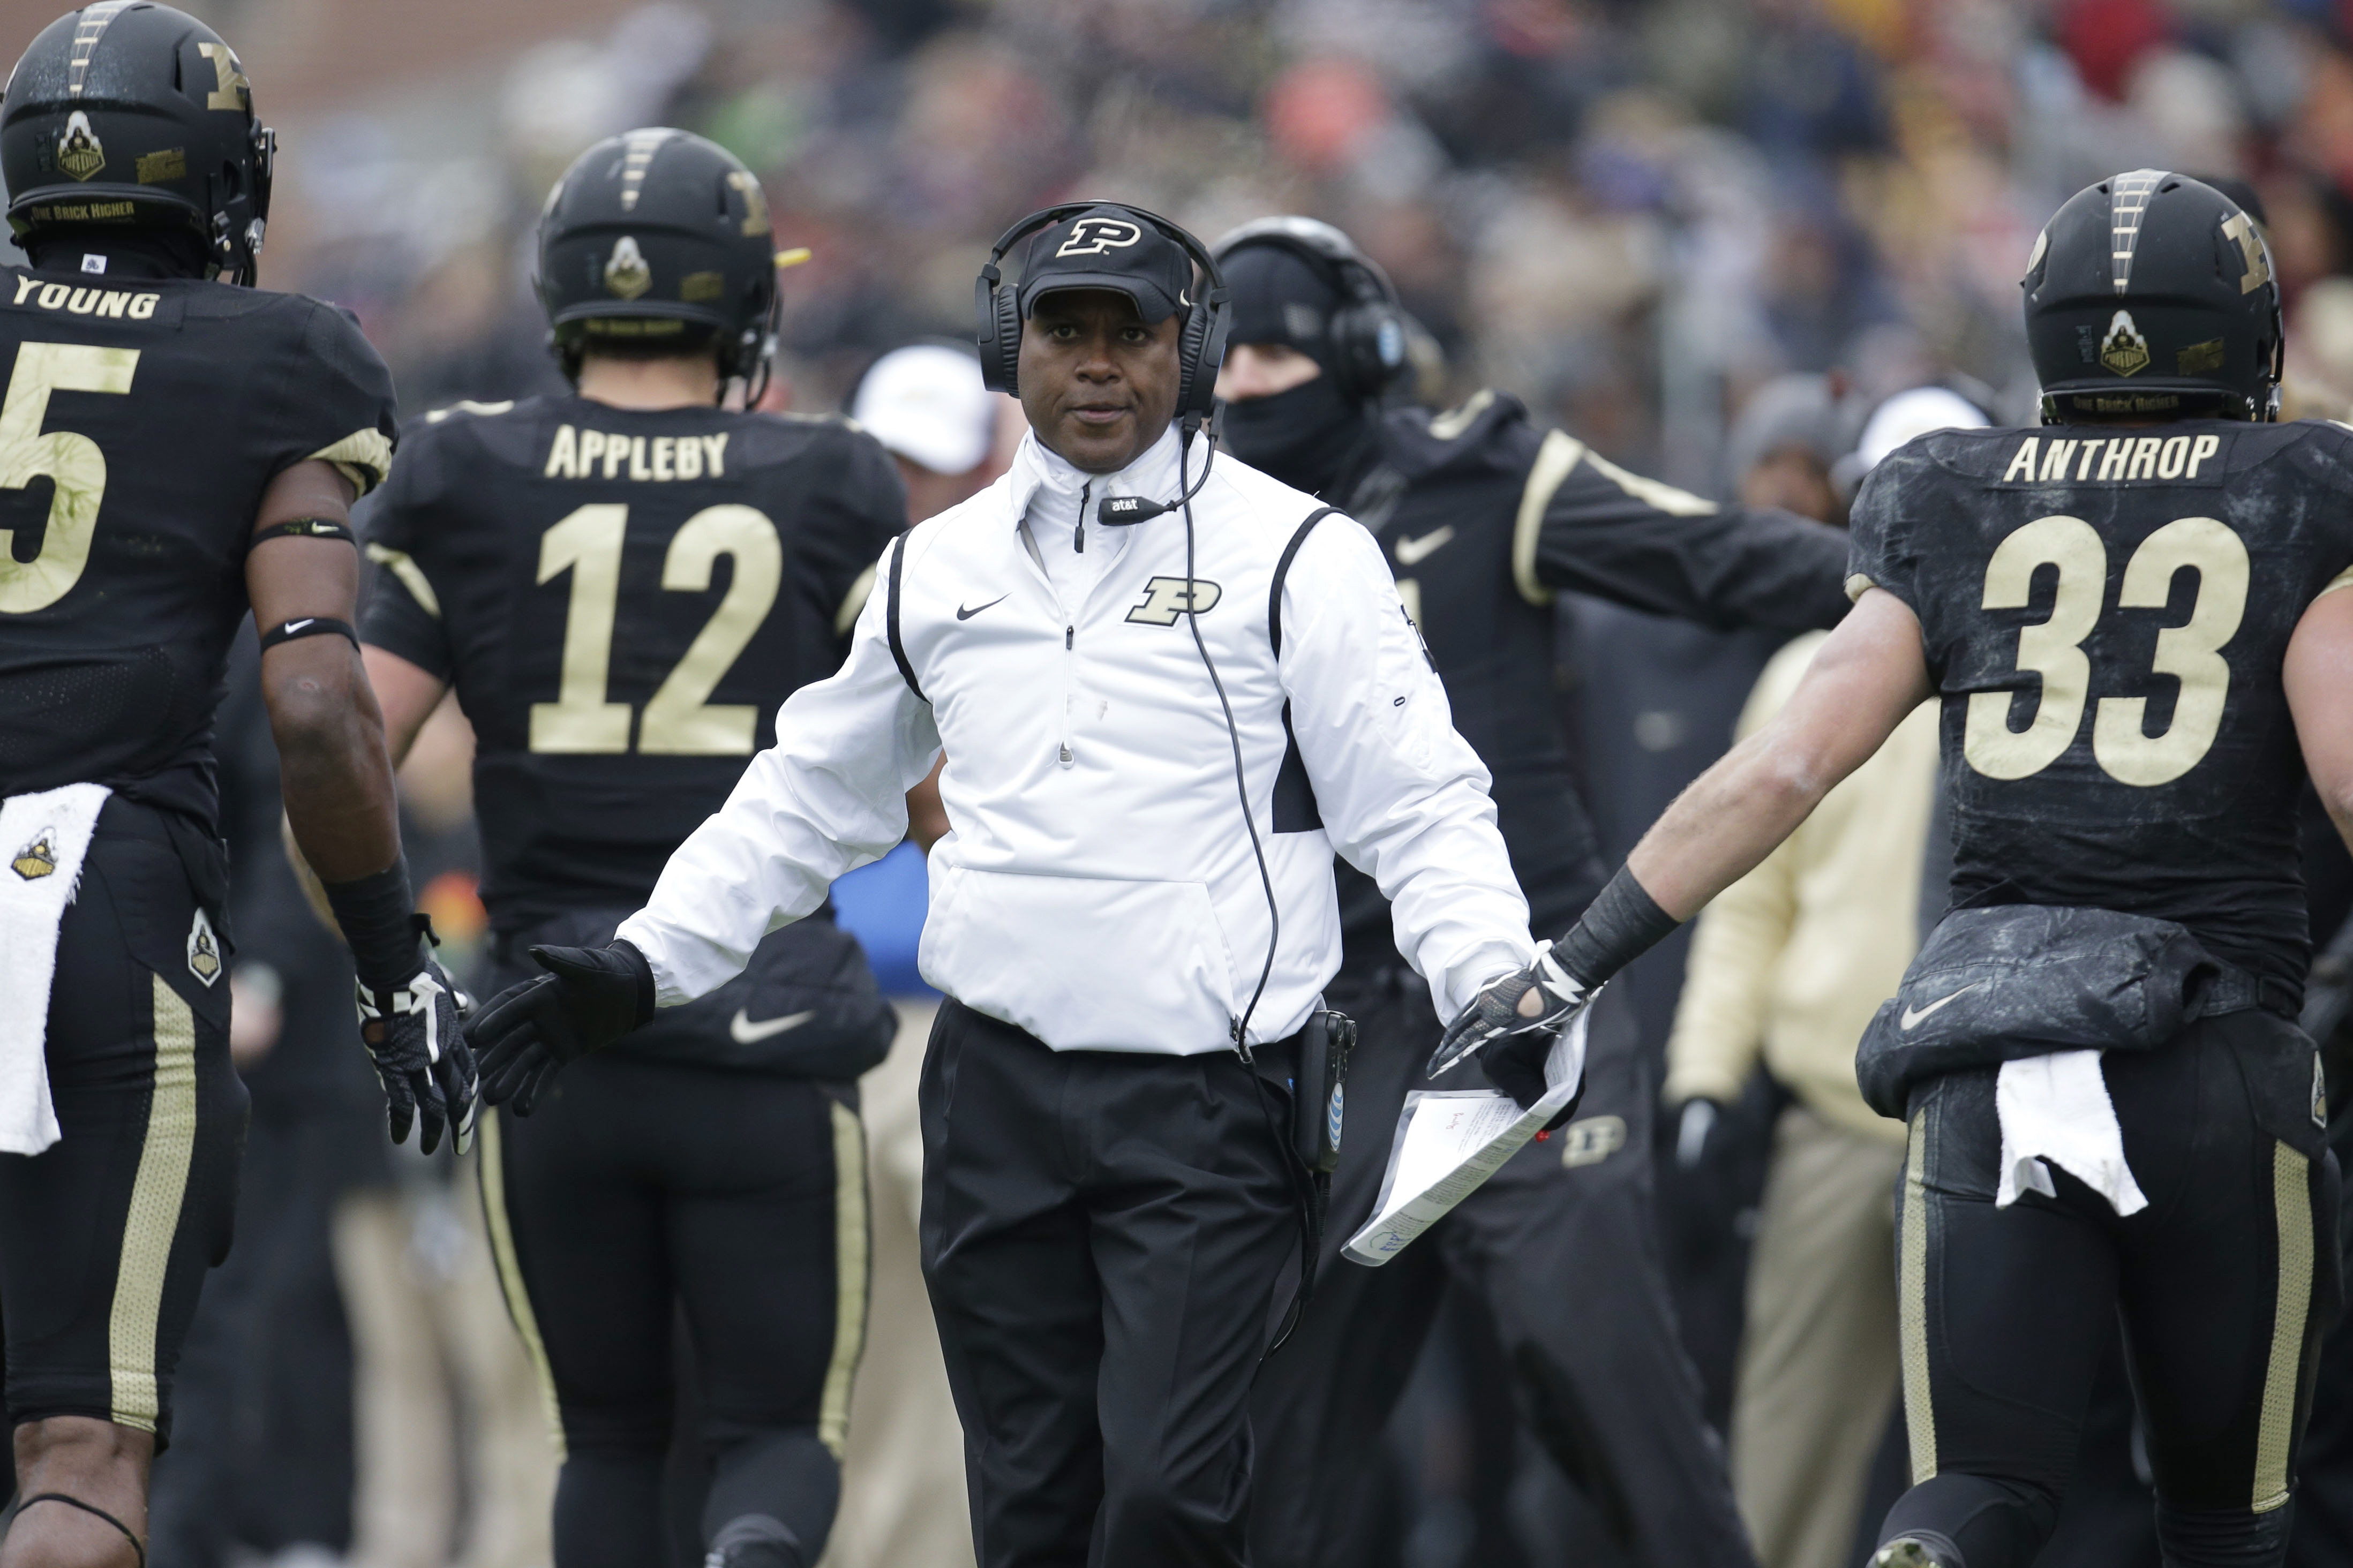 FILE - In this Nov. 28, 2015, file photo, Purdue coach Darrell Hazell congratulates his players after a score against Indiana during an NCAA college football game in West Lafayette, Ind. Hazell is 6-30 in three seasons with Purdue. (AP Photo/AJ Mast, File